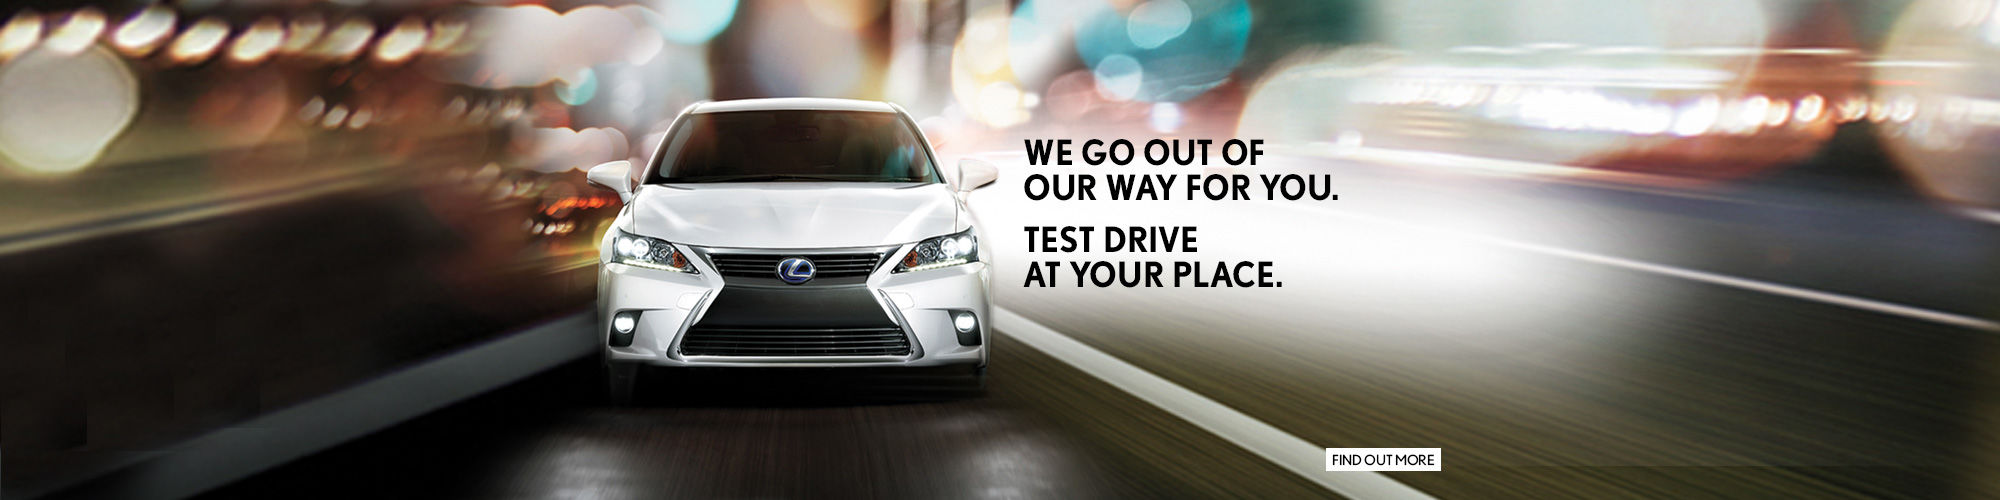 Test drive at your place